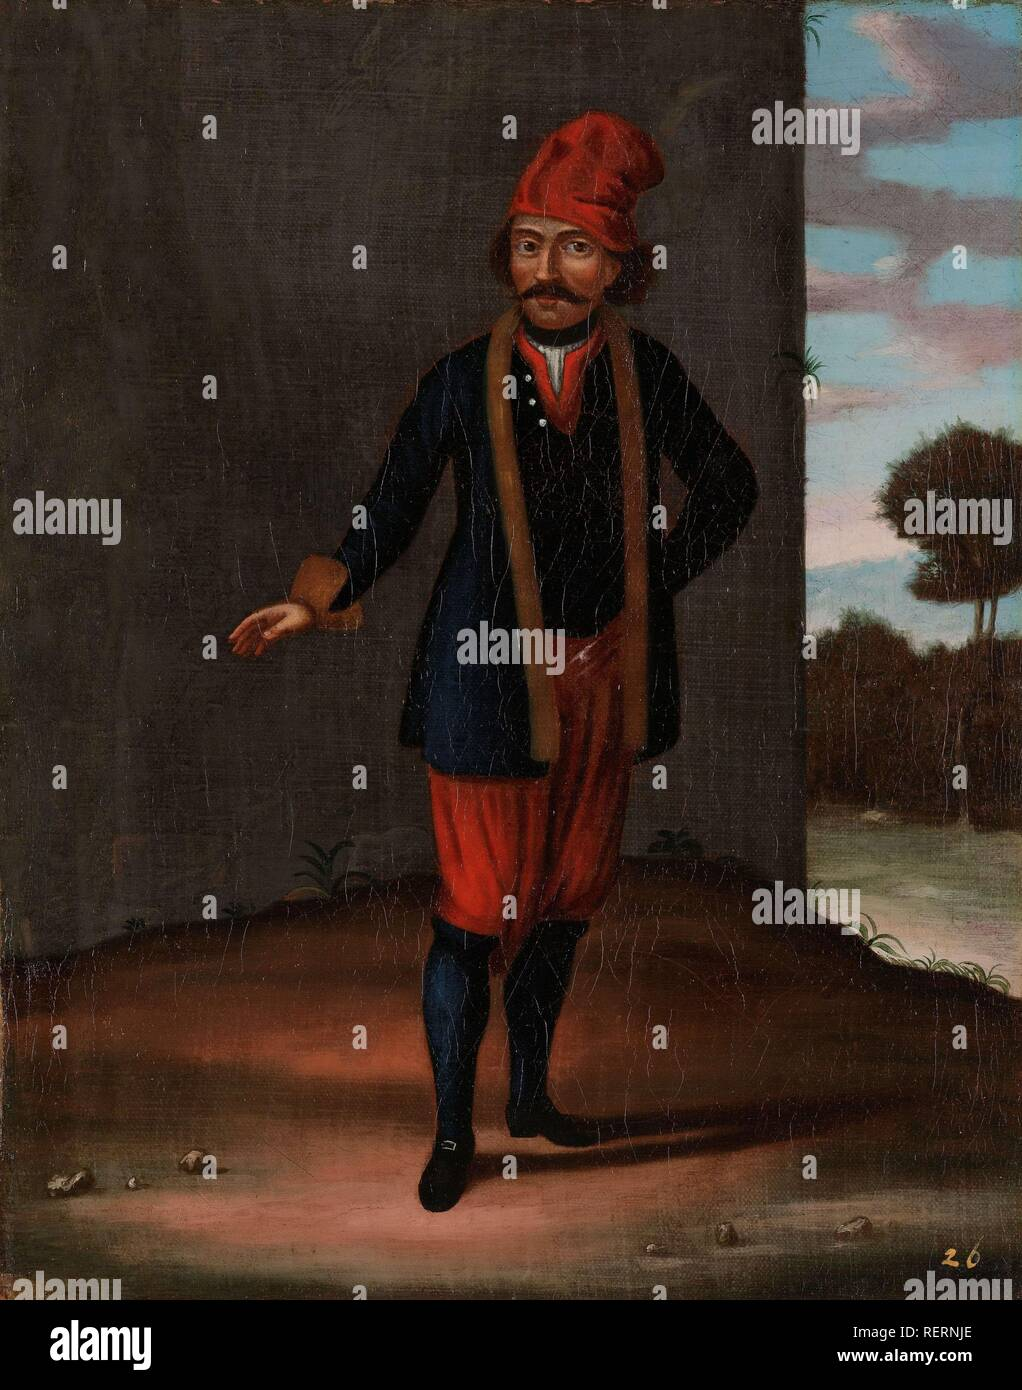 Man from the Island of Kithnos (Thermia). Dating: 1700 - 1737. Place: Istanbul. Measurements: h 39 cm × w 31 cm. Museum: Rijksmuseum, Amsterdam. Author: Jean Baptiste Vanmour (workshop of). - Stock Image